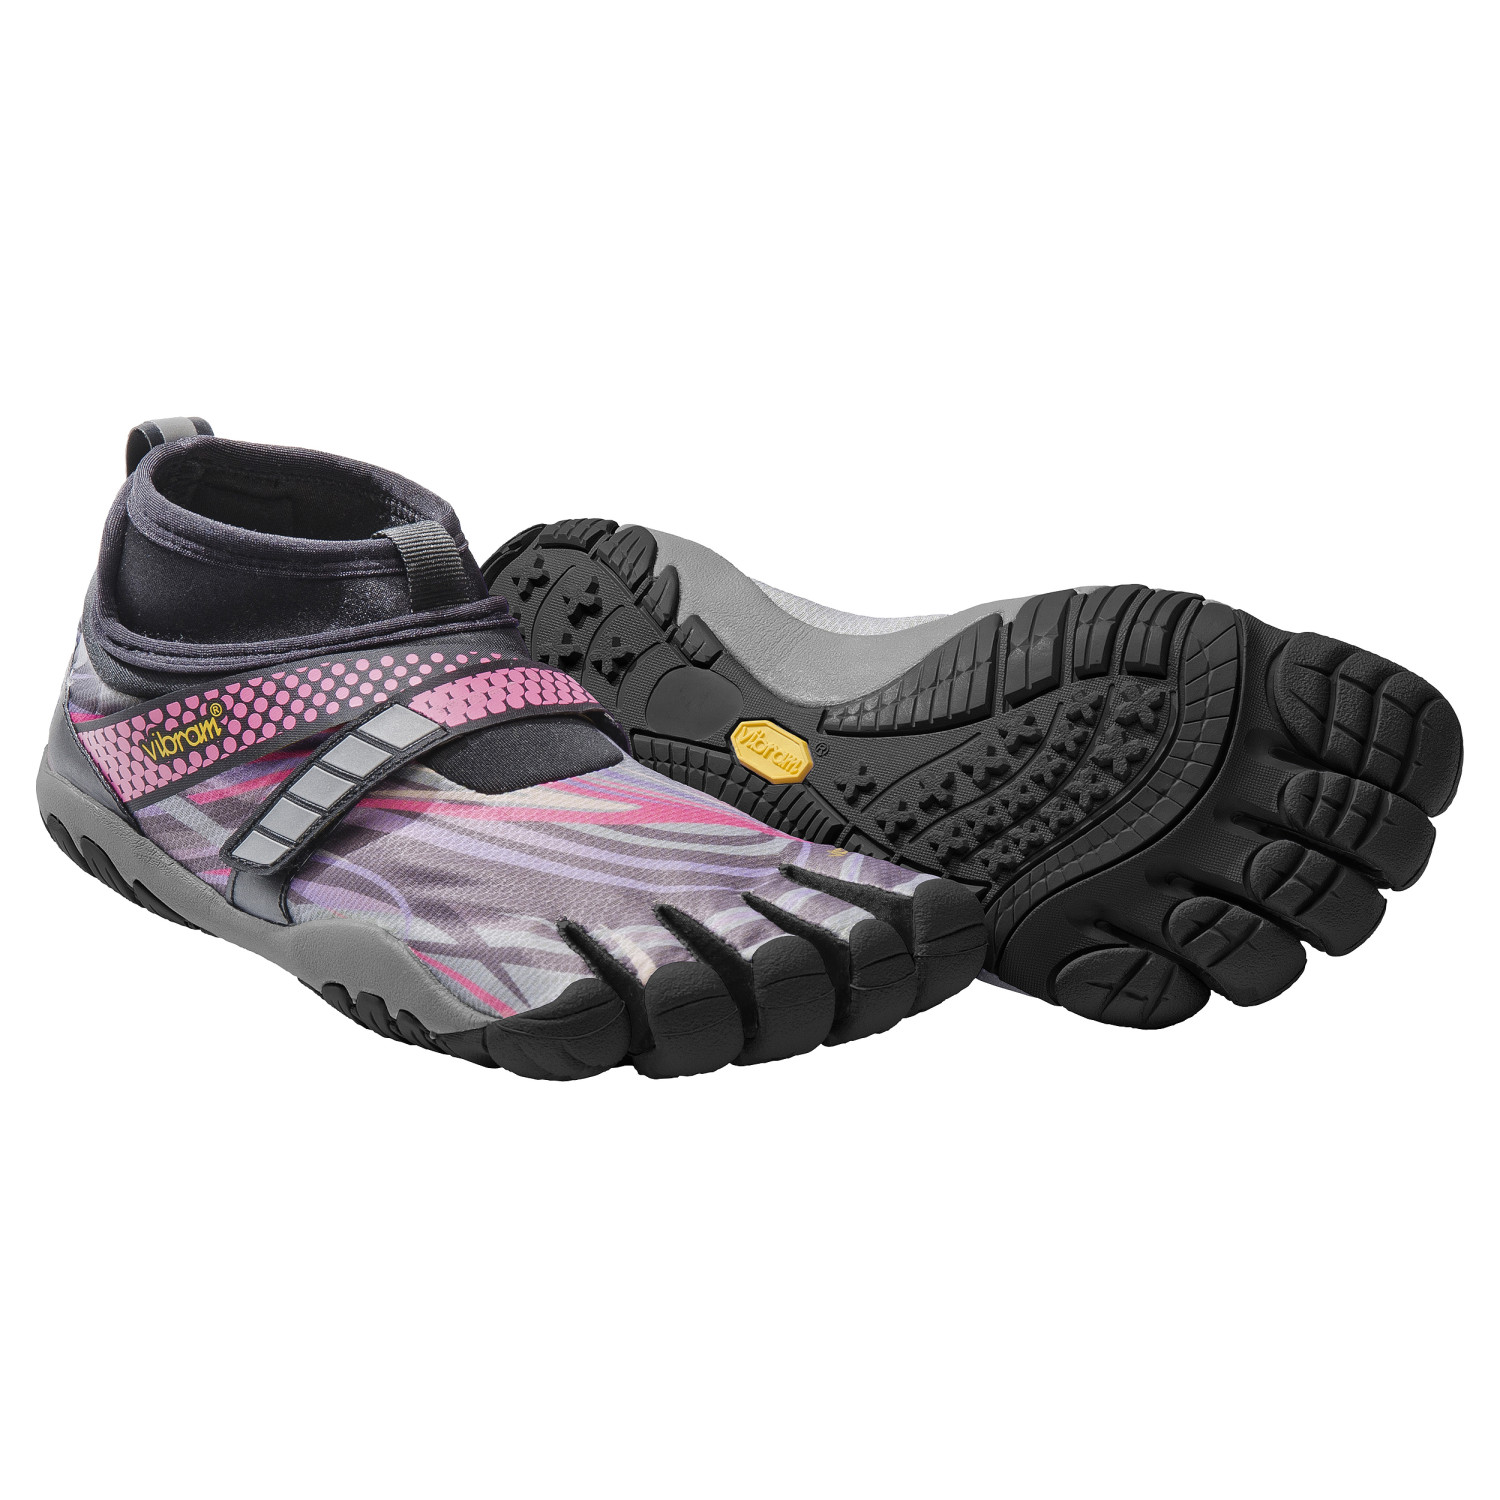 photo: Vibram Men's FiveFingers Lontra barefoot / minimal shoe